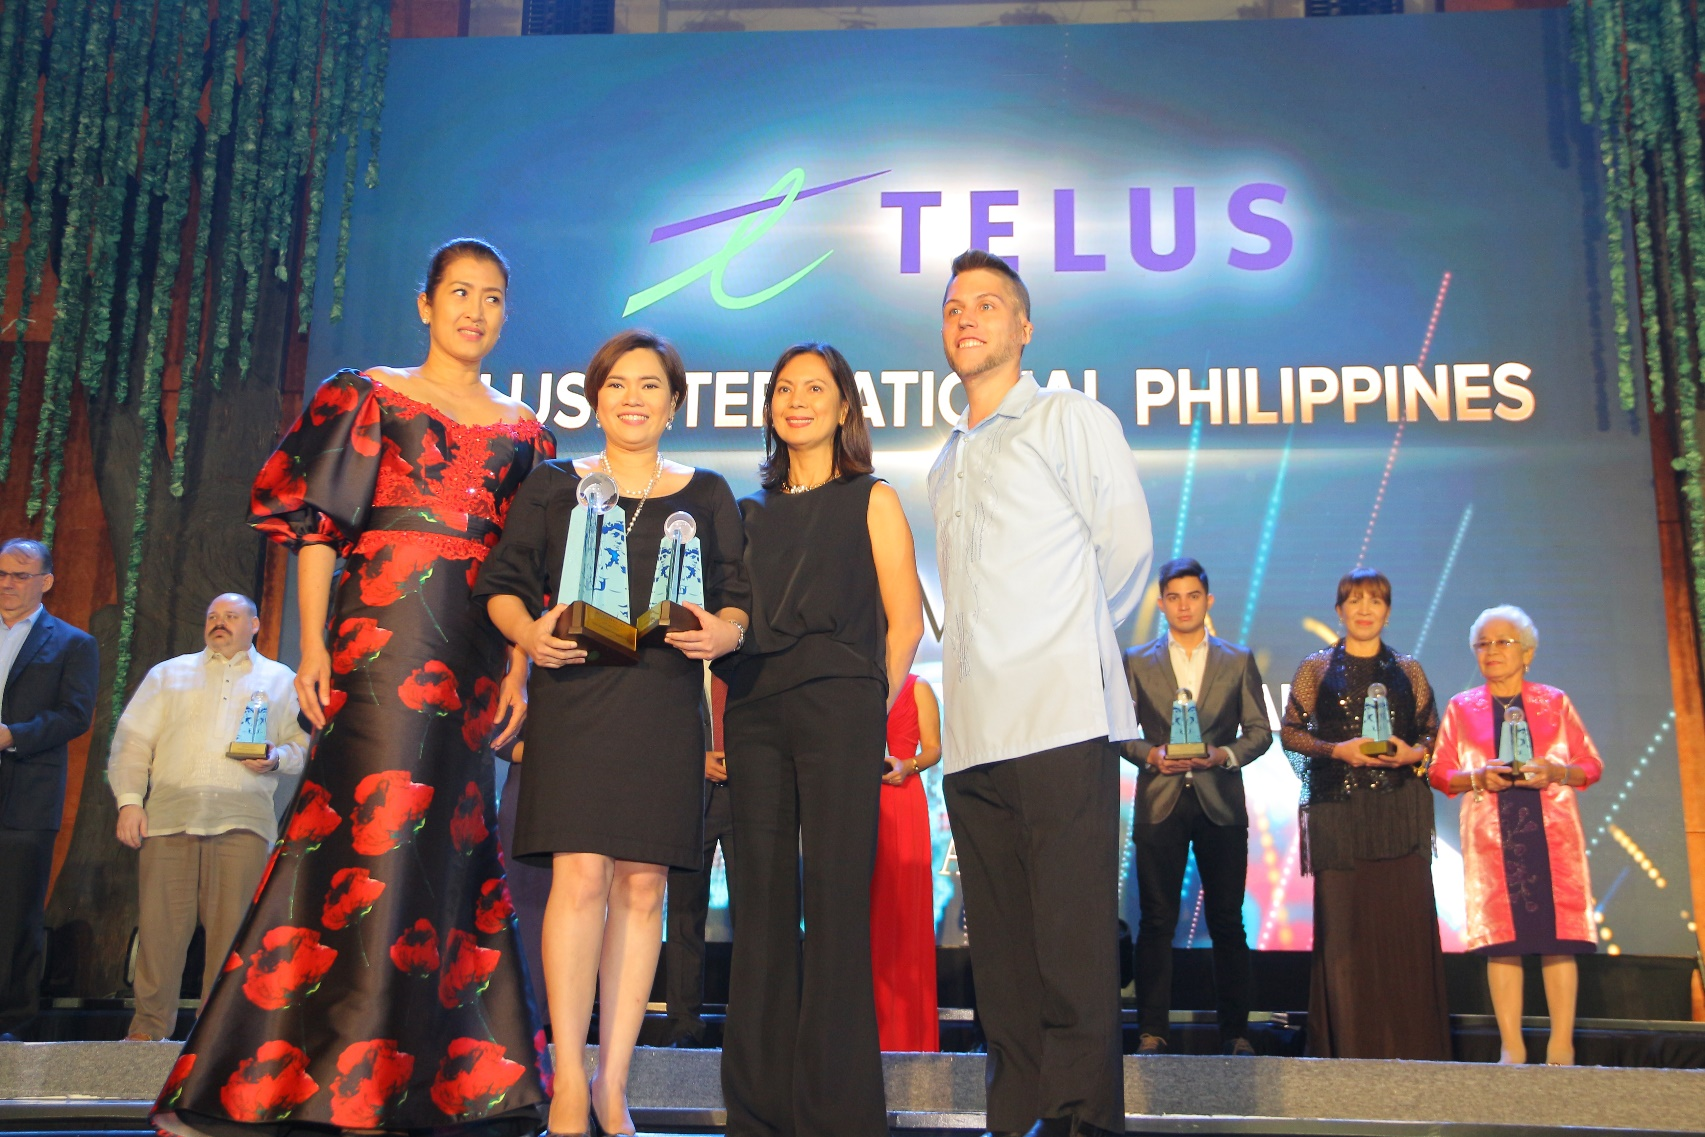 TELUS International Wins Corporate Social Responsibility Company of the Year for 2017